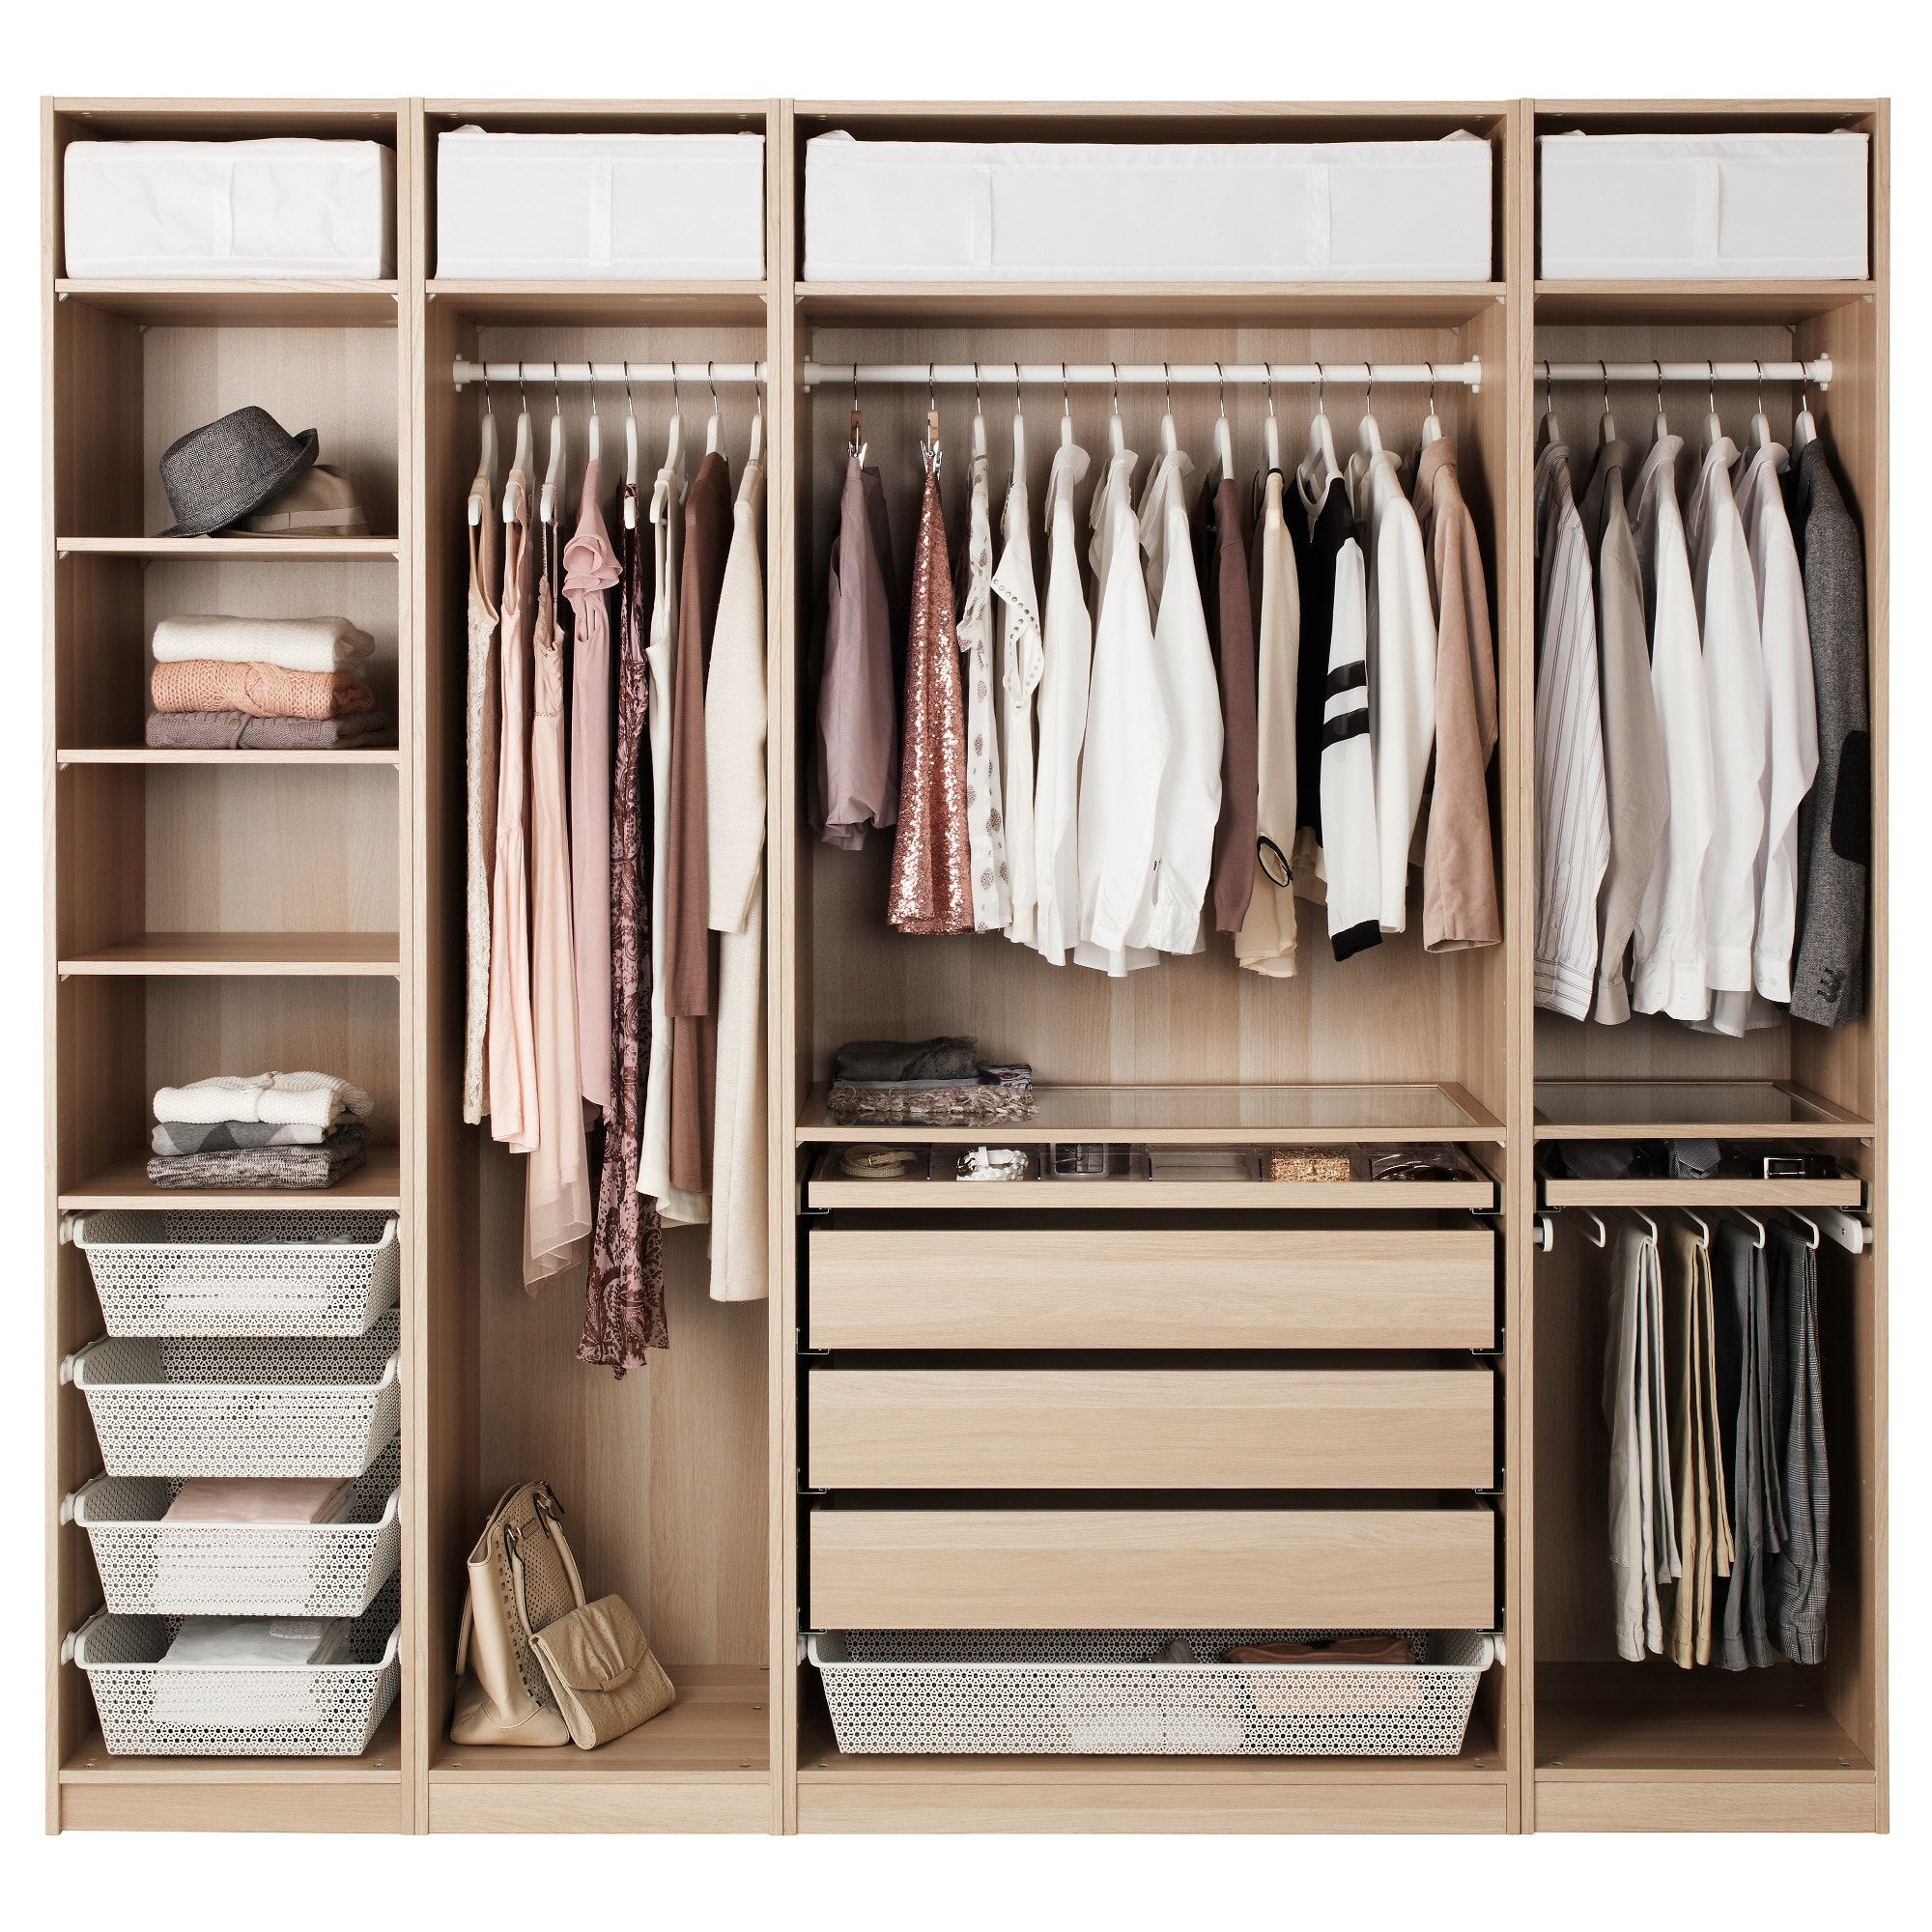 Ikea Australia Affordable Swedish Home Furniture Pax Kleiderschrank Ikea Kleiderschrank Kleiderschrank